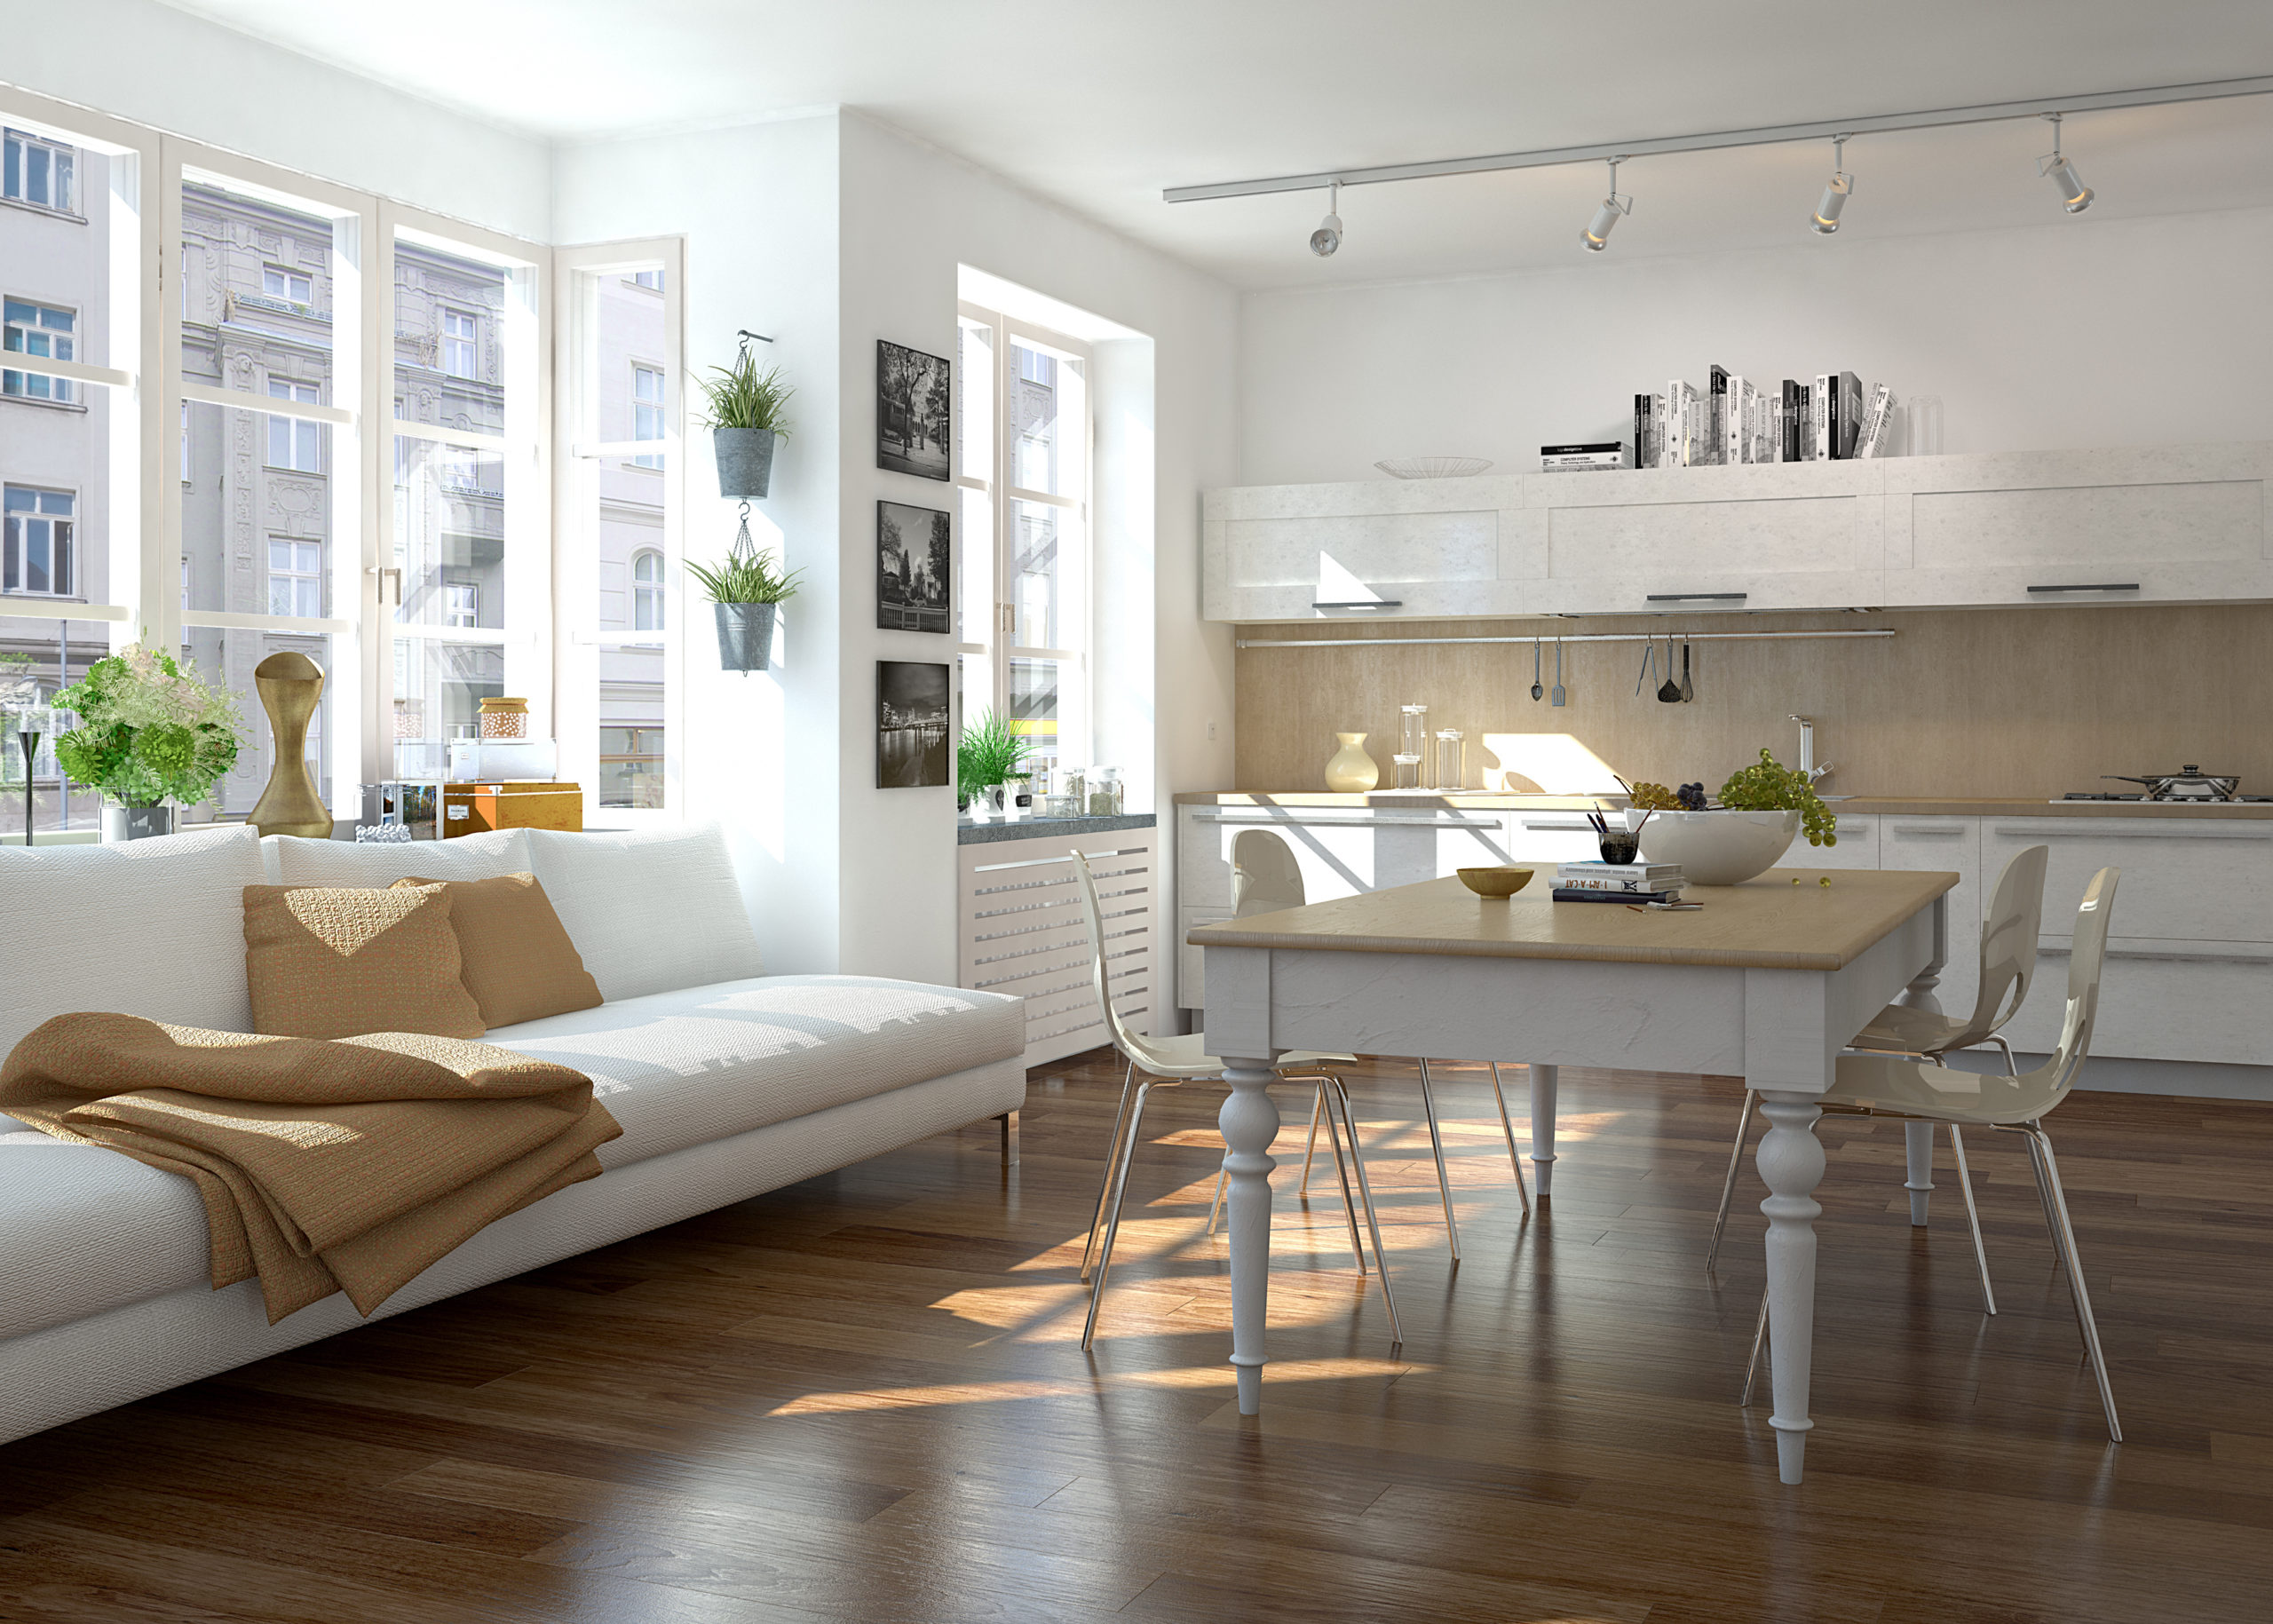 Trending Home Features: Love It or Leave It